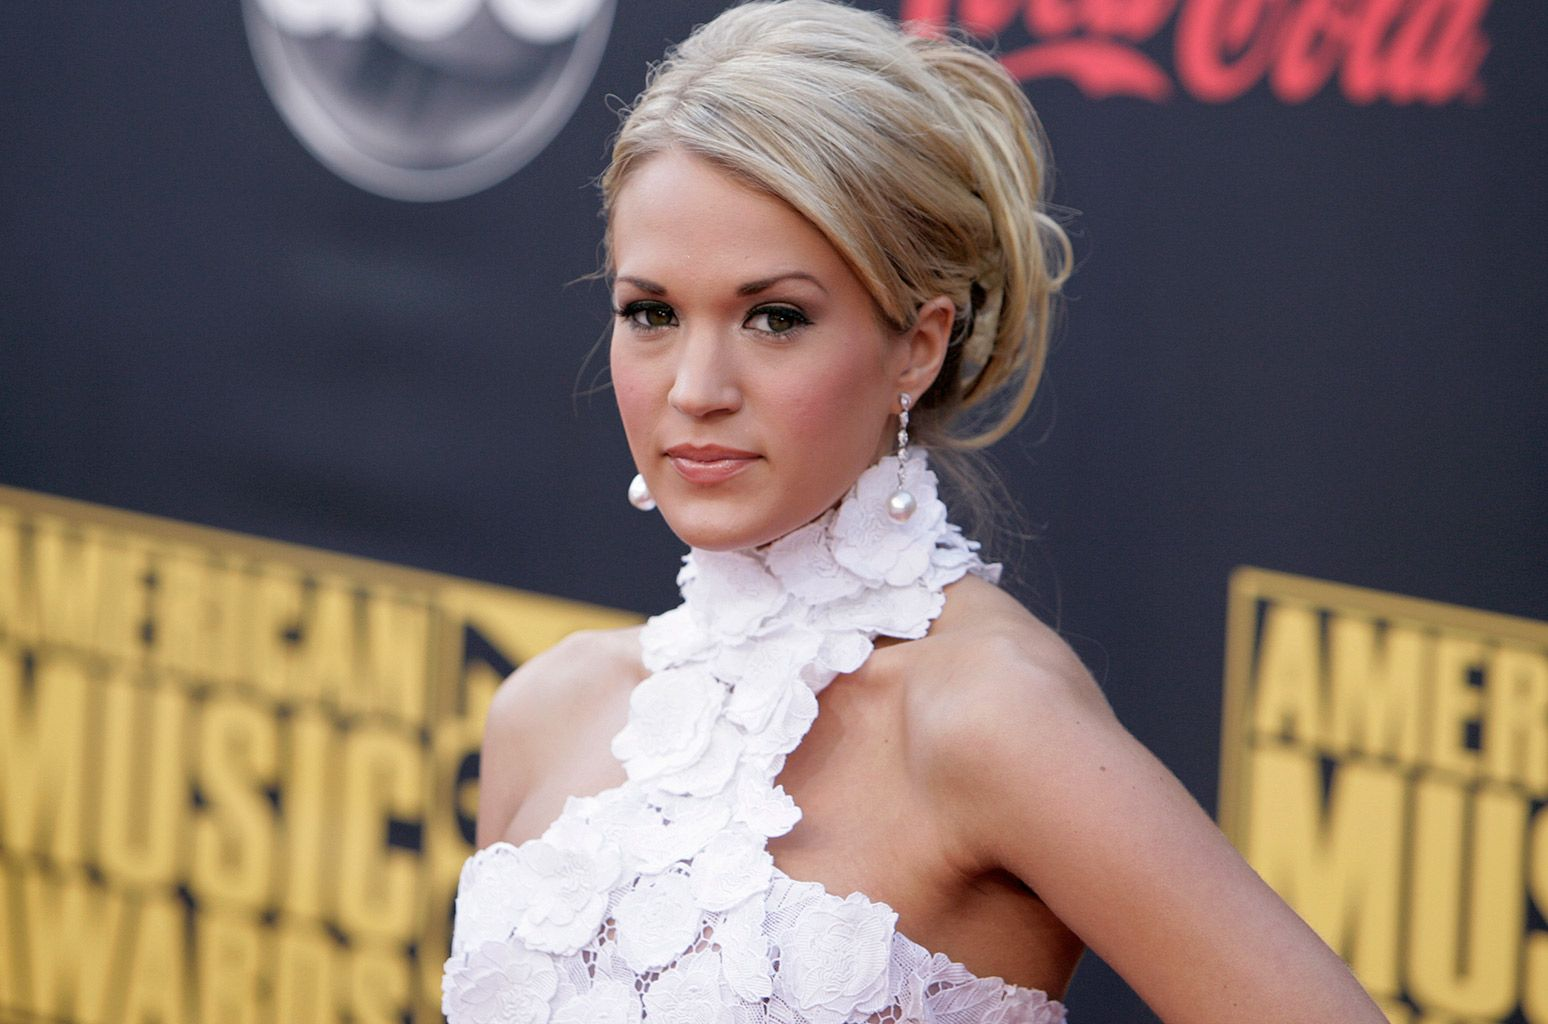 Carrie Underwood Shared More Details About The Freak Accident That Gave Her 40 Facial Stitches